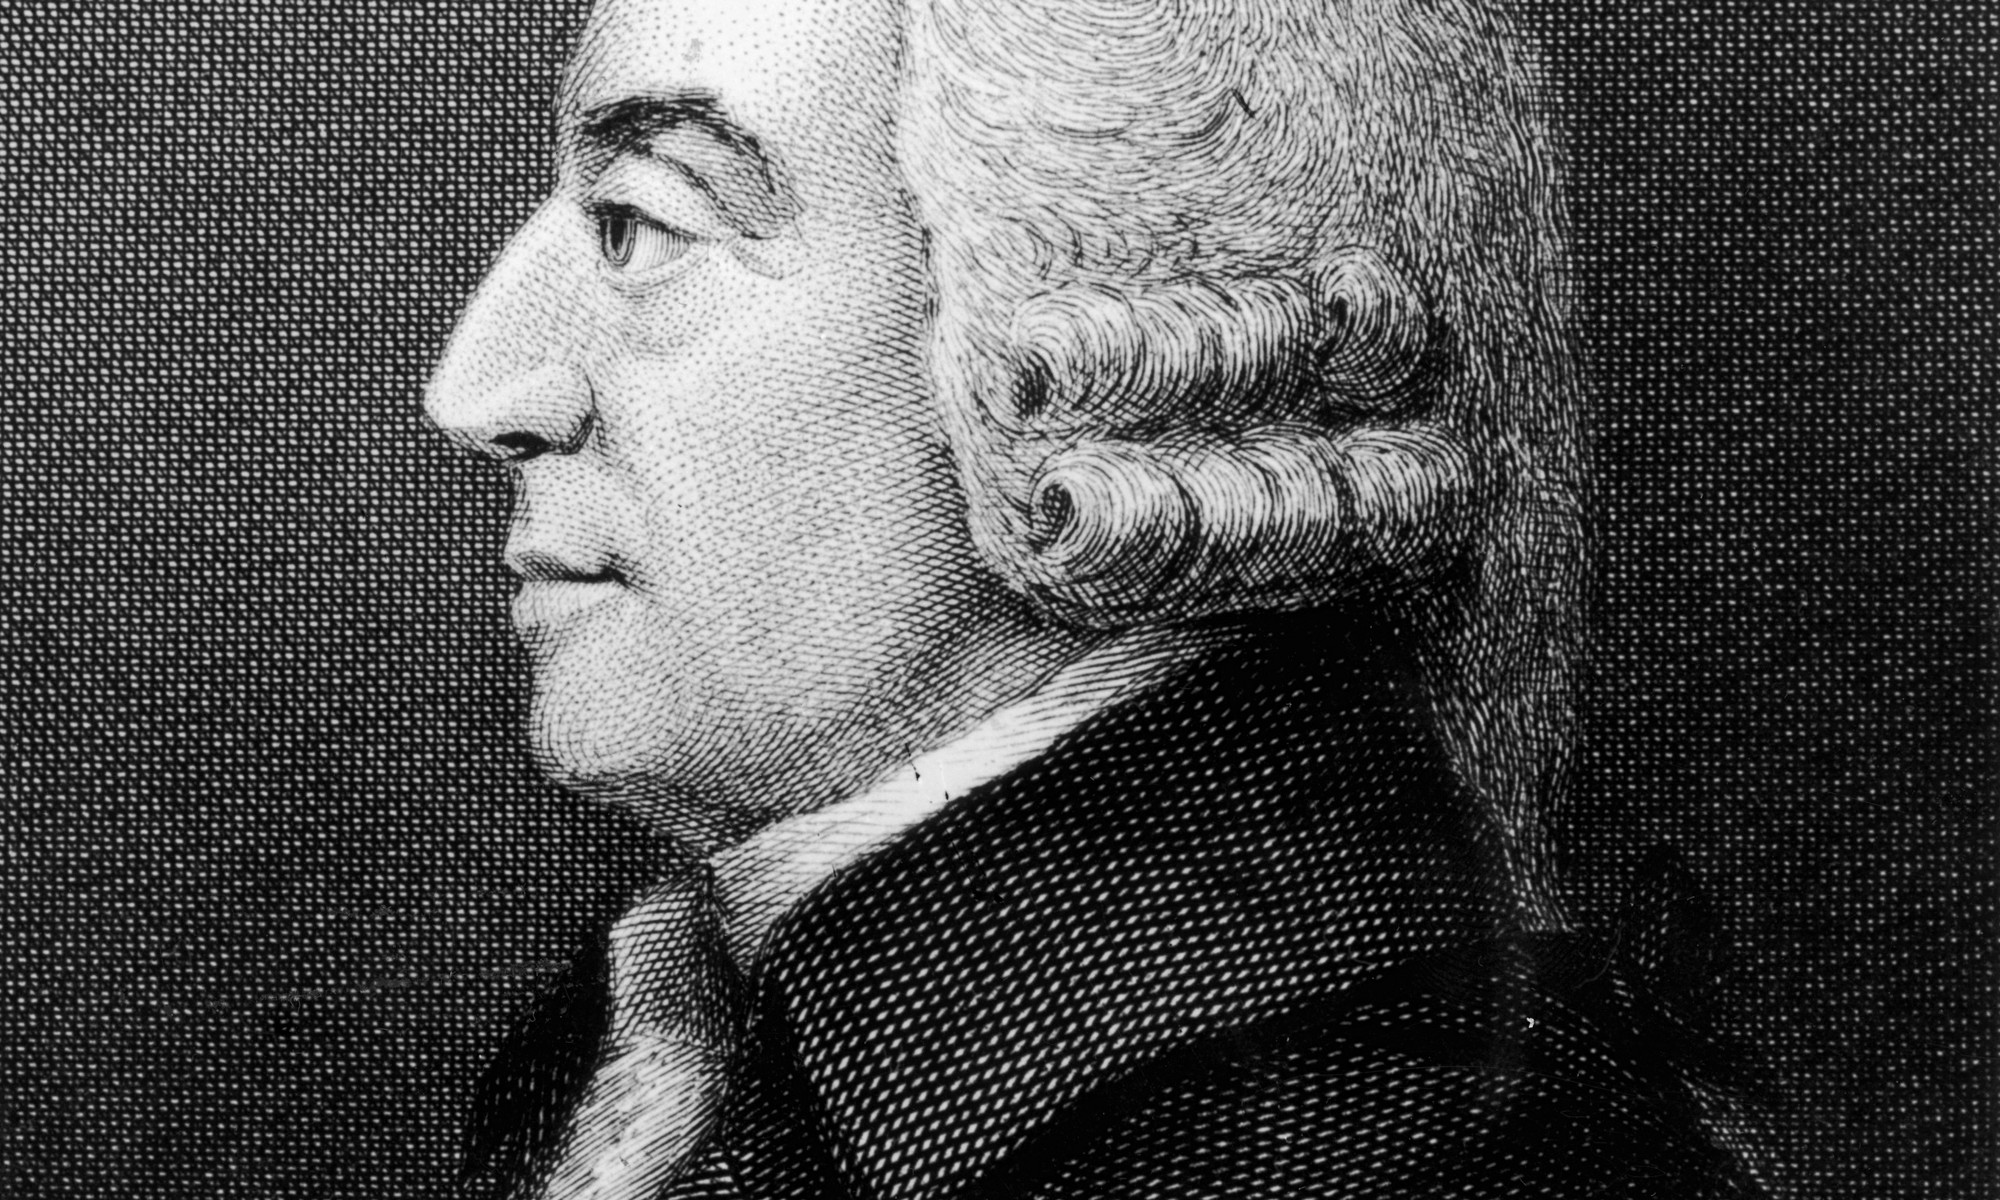 an analysis of adam smith opened the wealth of nations with observation The first observation to be made is that adam smith only used the  [3] an essay  on the origins of language entitled considerations concerning the first  nature  and causes of the wealth of nations (1776), [4] 4hereafter abbreviated as wn   we mortals do not understand anything about watch making: if we open up a .